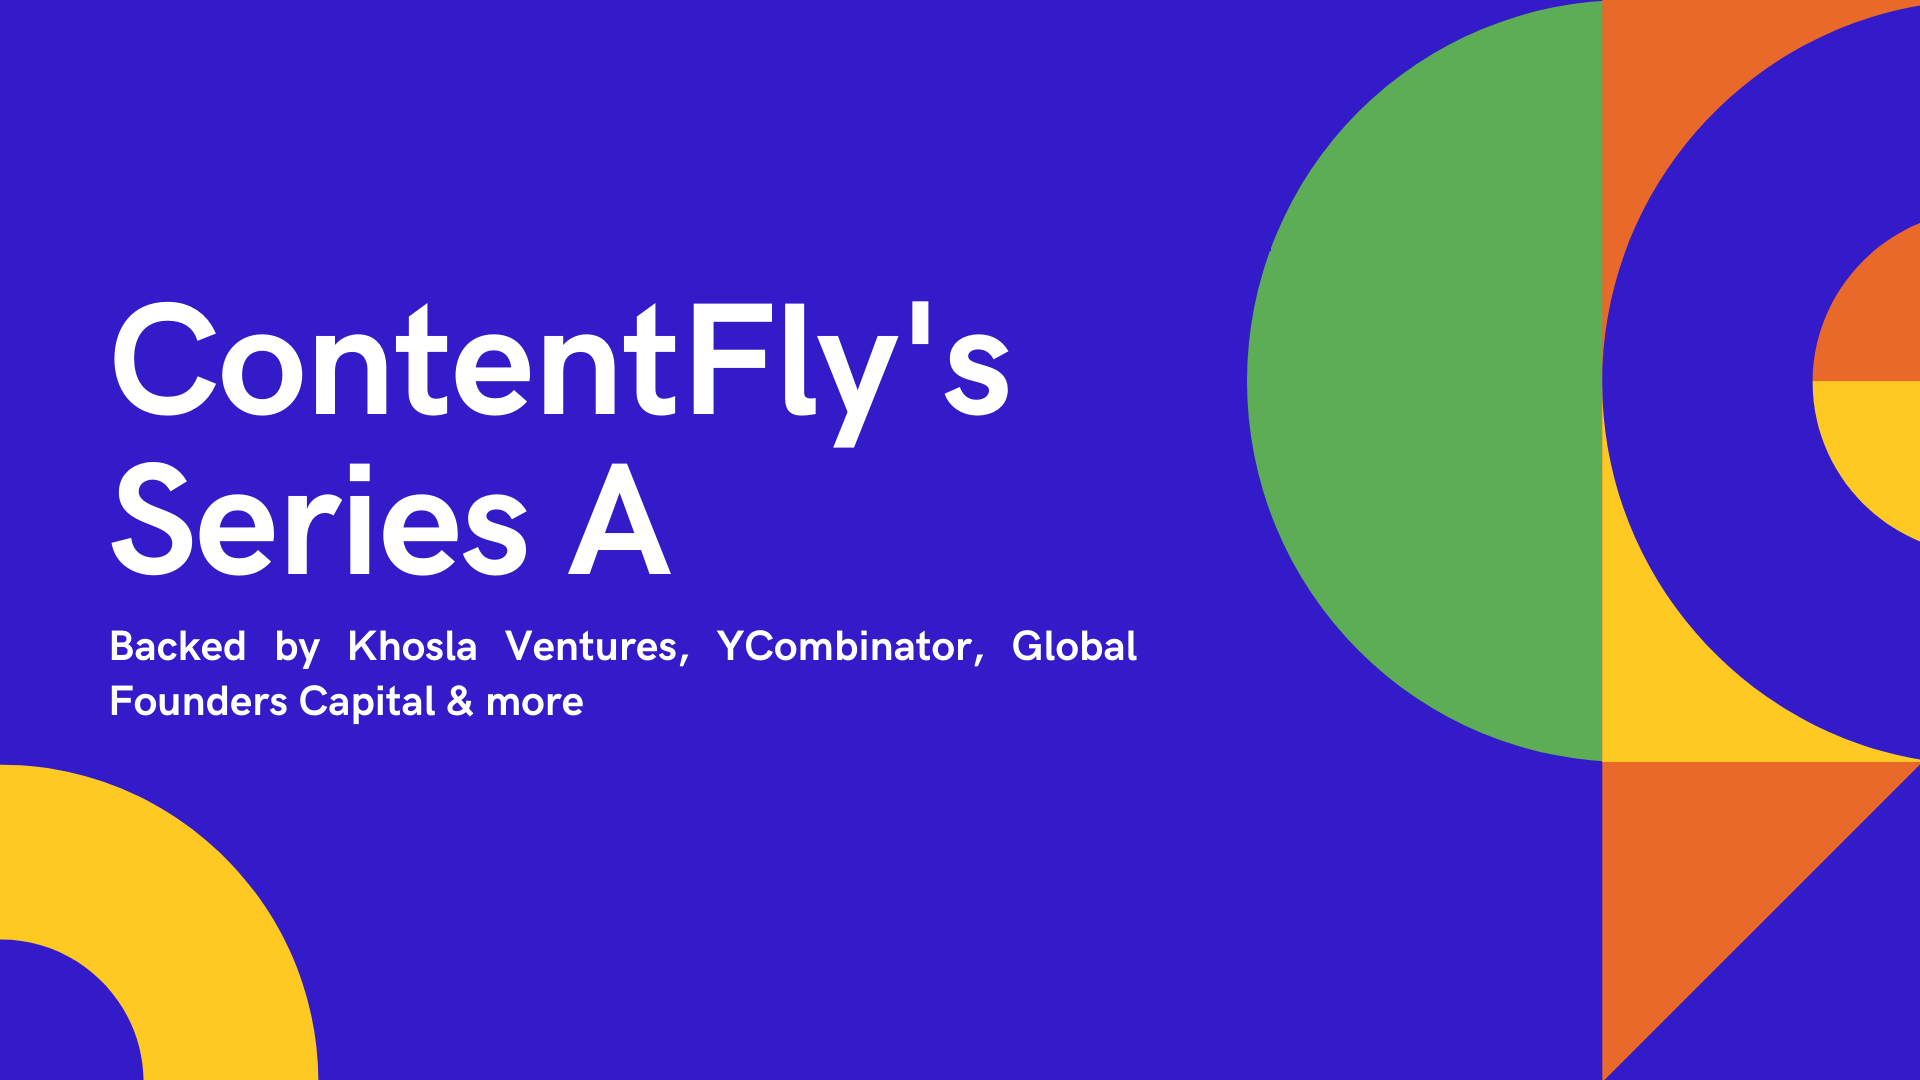 ContentFly's $9m Series A from Khosla Ventures, YCombinator